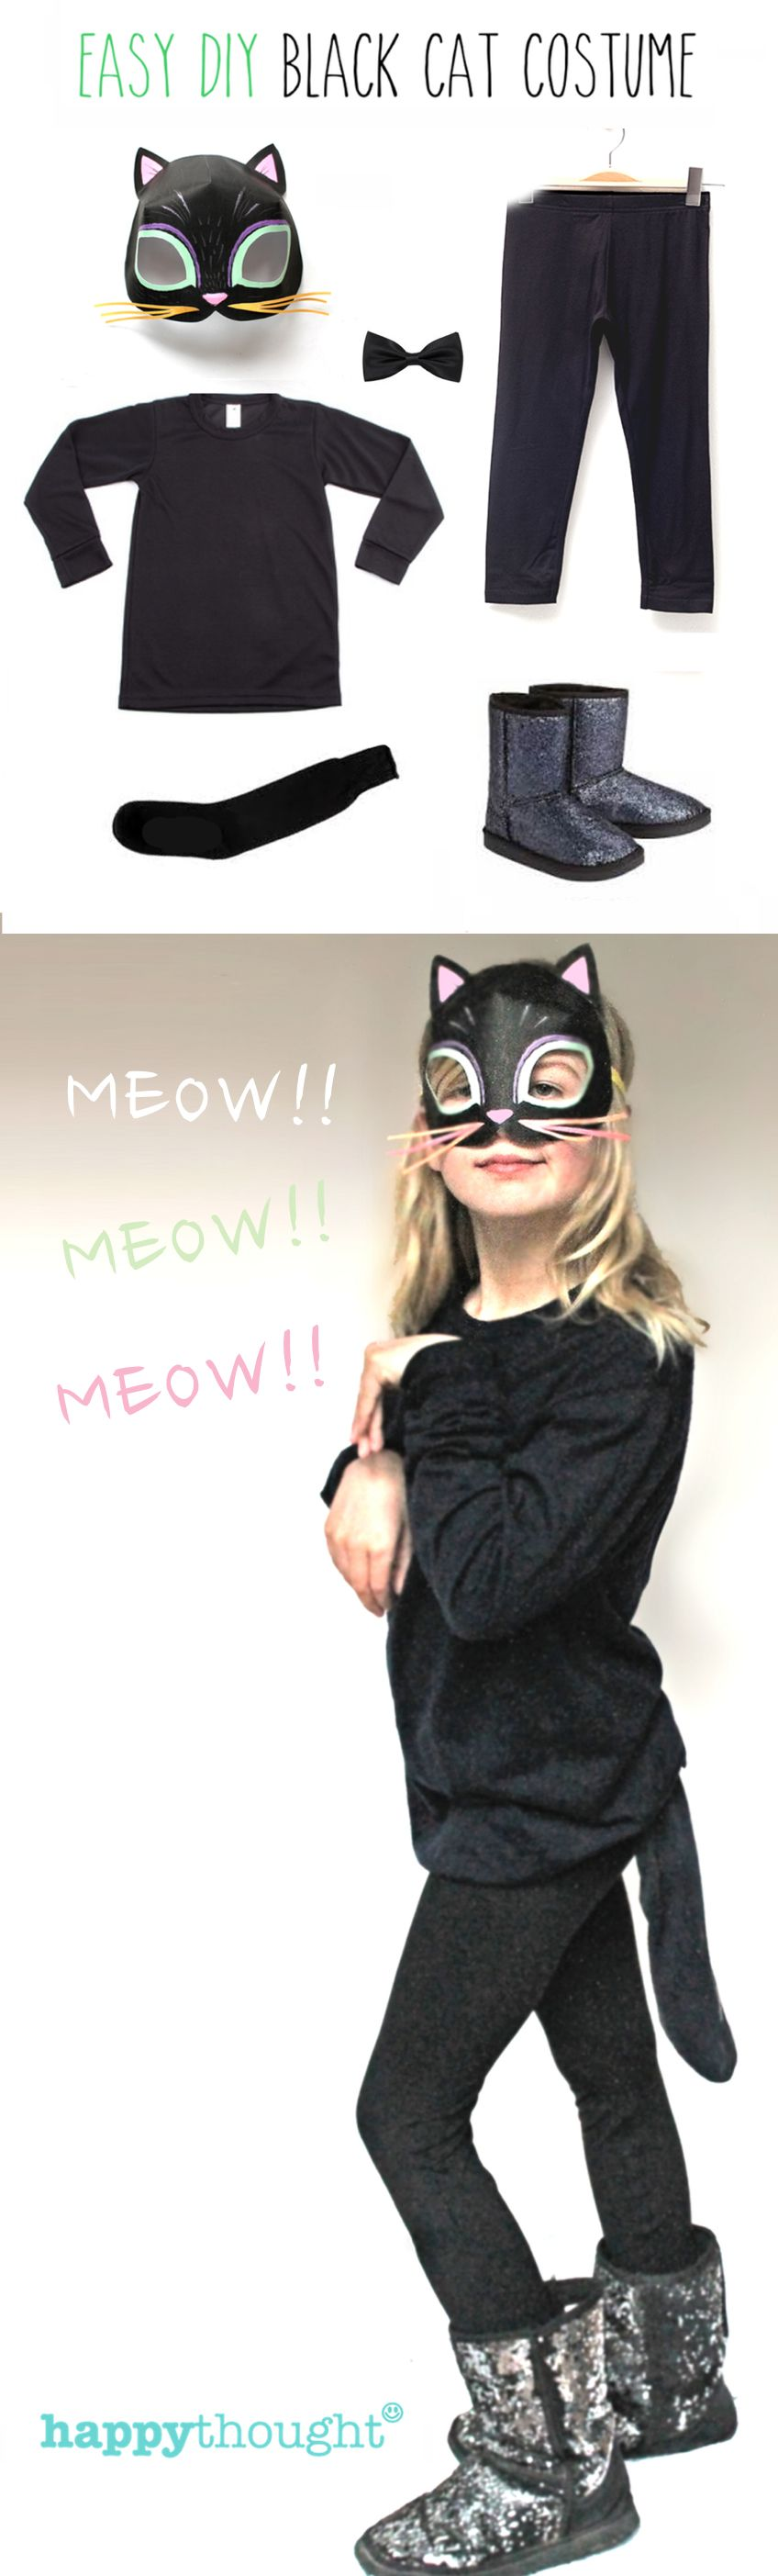 Diy party costume mask black cat kitten template printable - Make Your Own Paper Cat Mask Instant Download And Easy Diy Kids Cat Costume